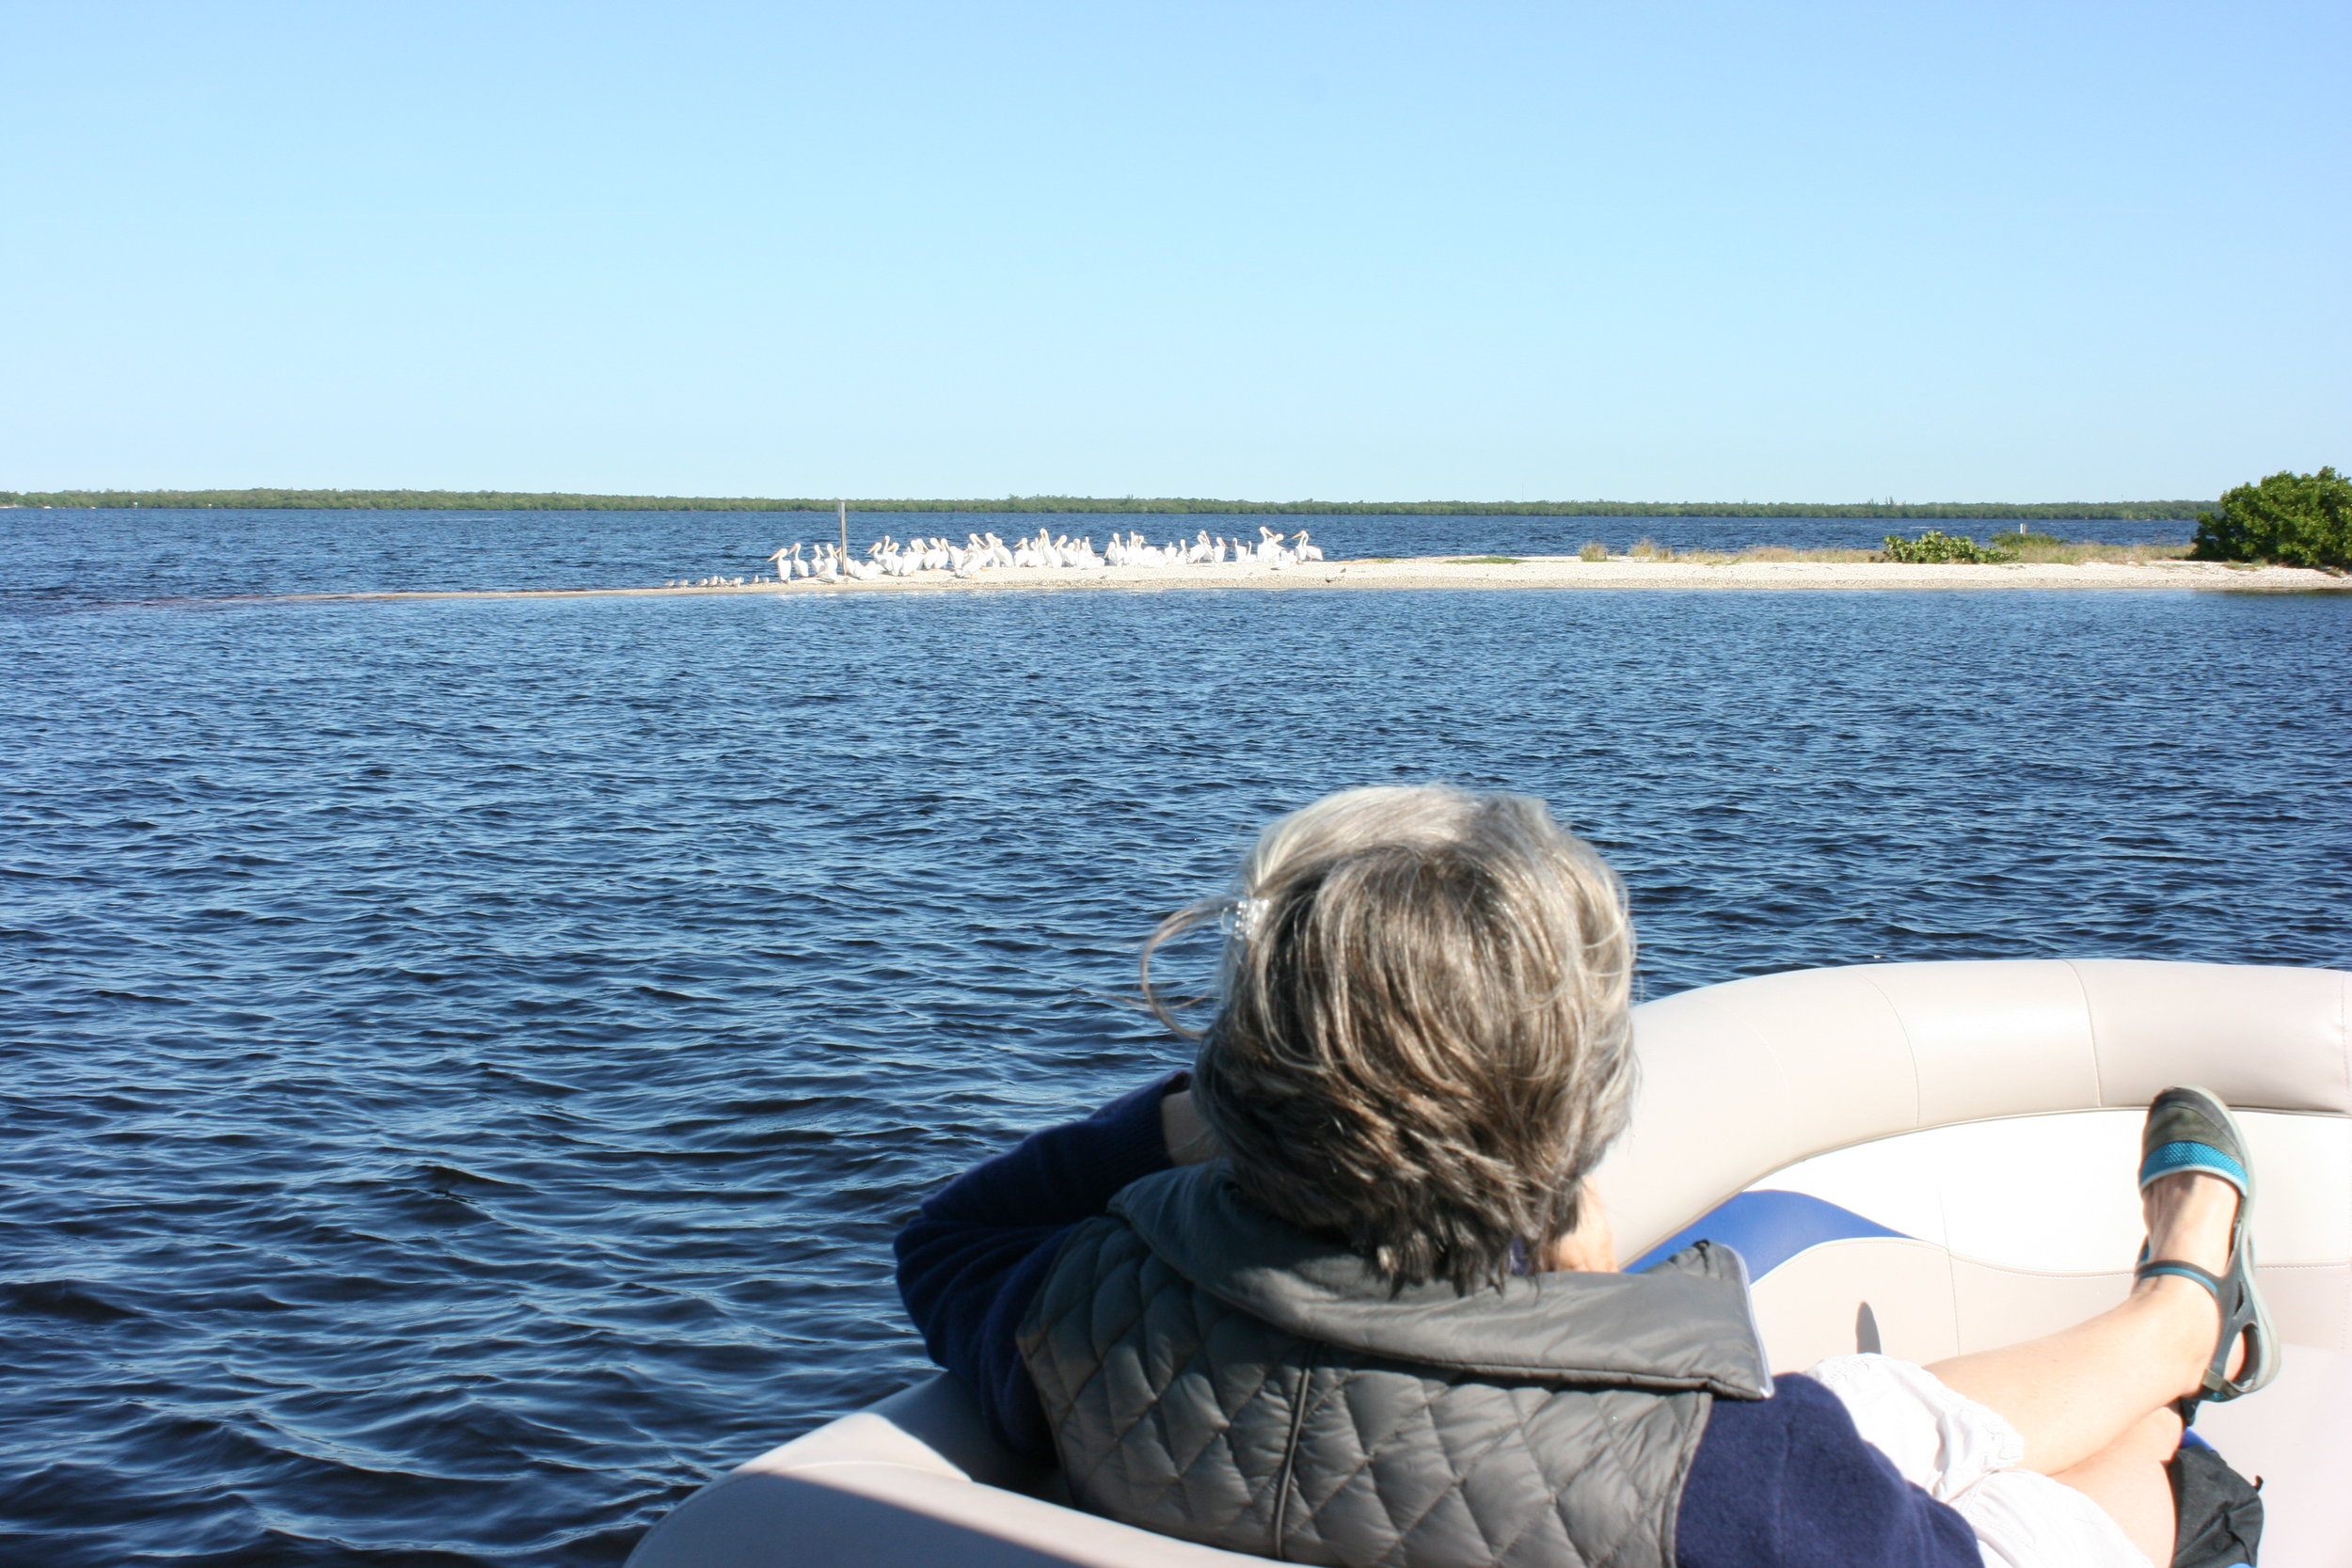 Participants observed a flock of American White Pelicans.